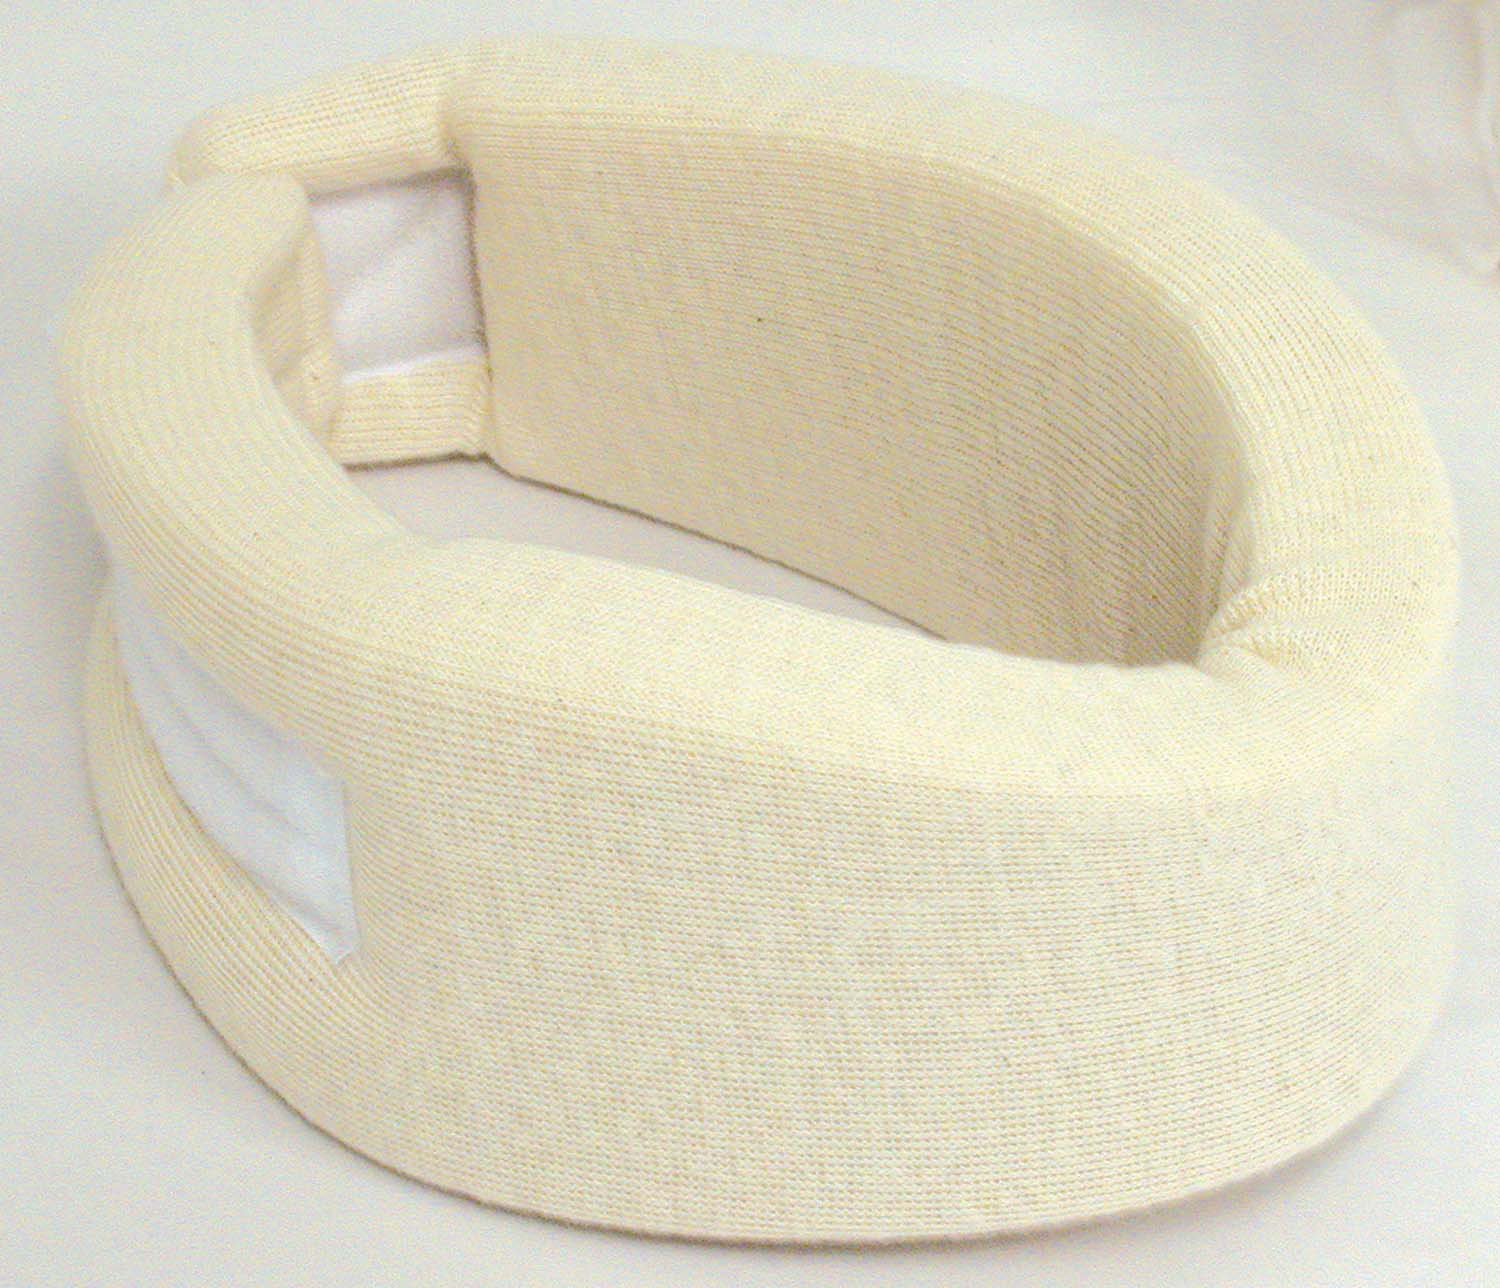 universal-firm-foam-cervical-collar-3-1-2-631-6057-0043-lr.jpg